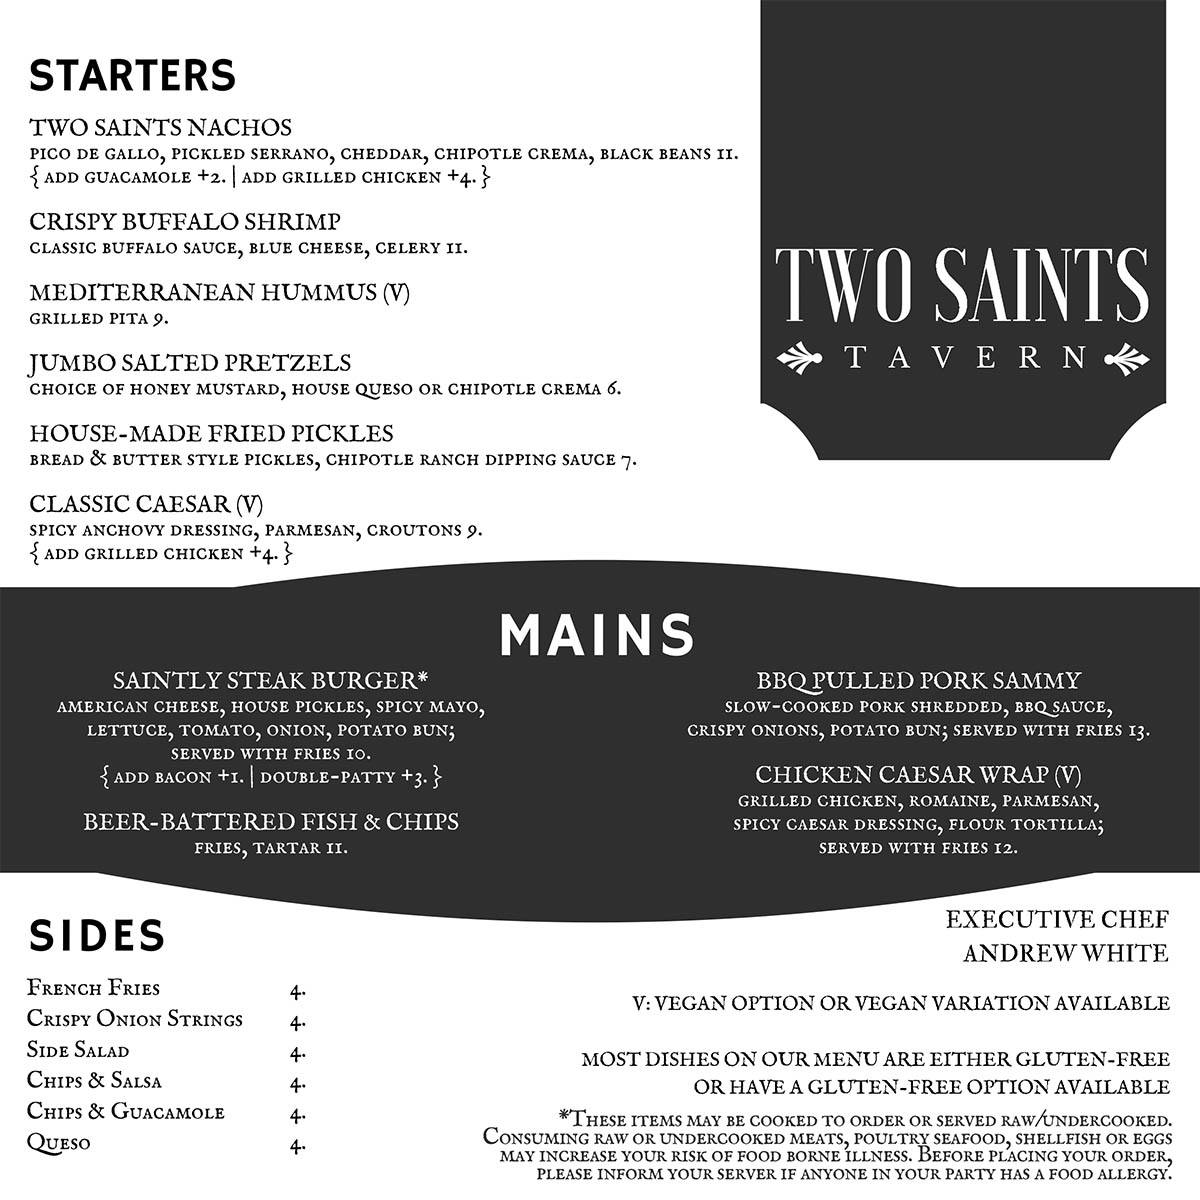 Two Saints Tavern food menu